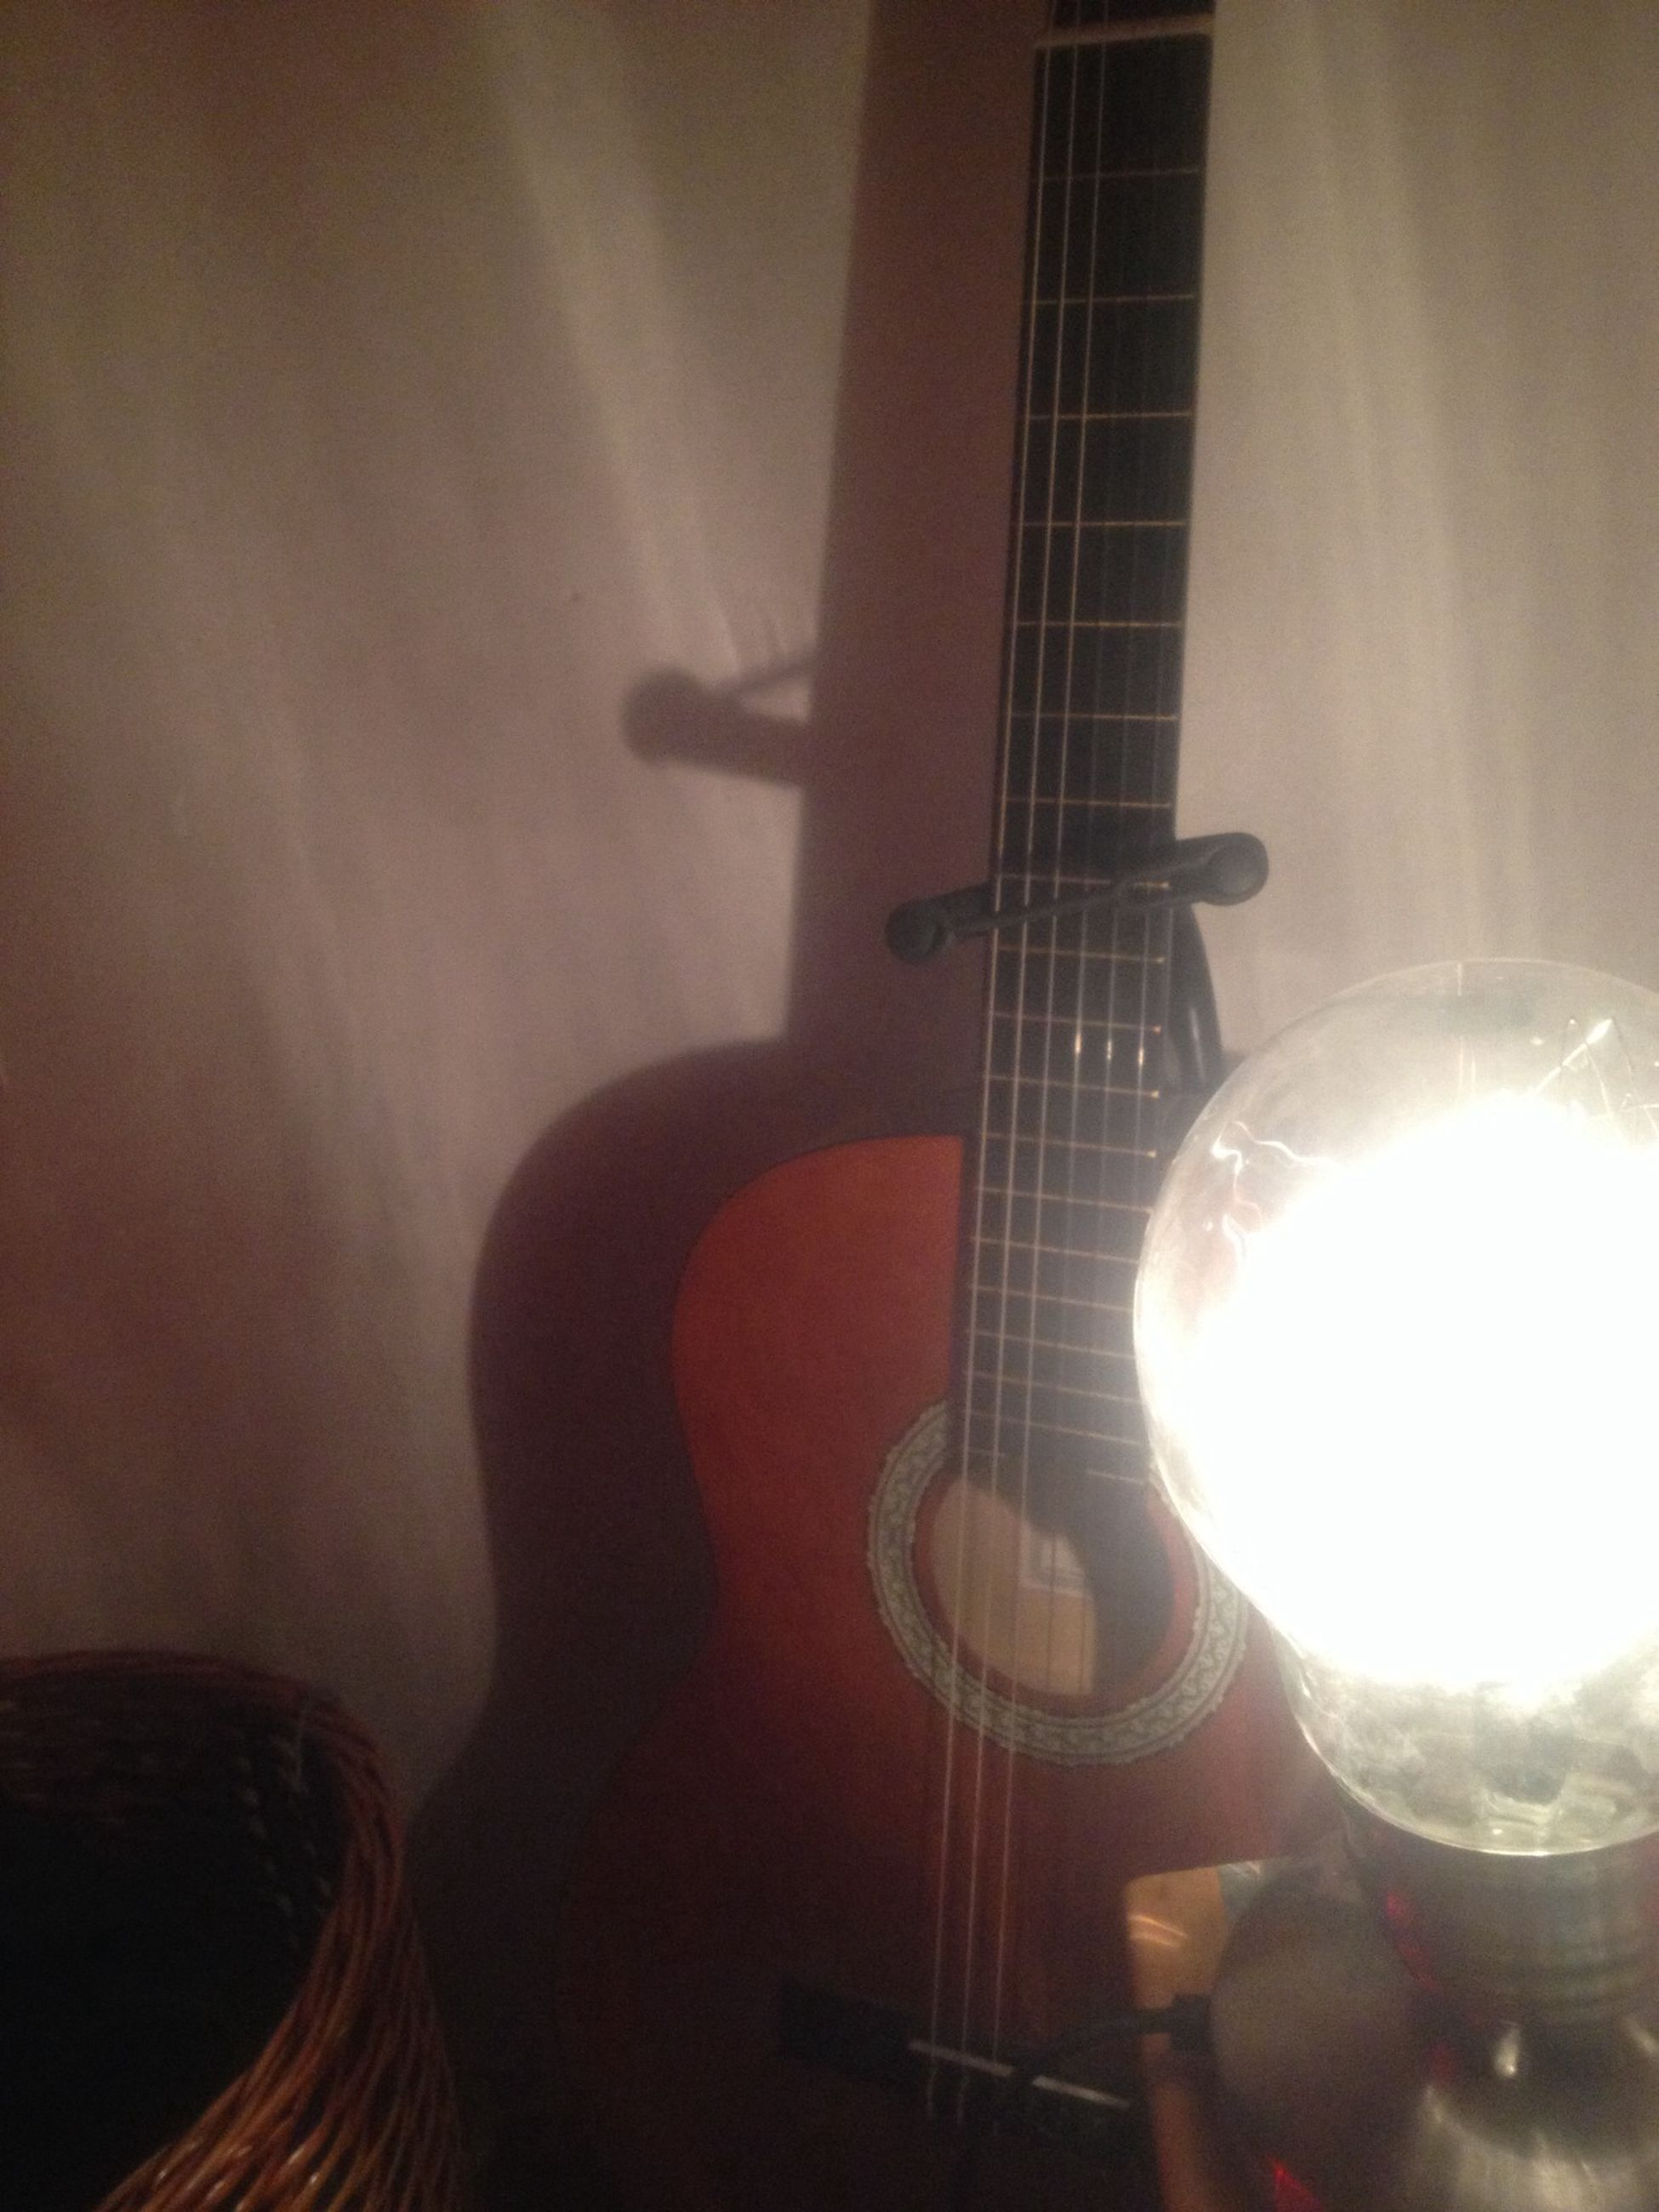 indoors, music, musical instrument, guitar, illuminated, arts culture and entertainment, lighting equipment, musical equipment, musical instrument string, home interior, electricity, close-up, light - natural phenomenon, technology, glowing, night, string instrument, focus on foreground, no people, low angle view